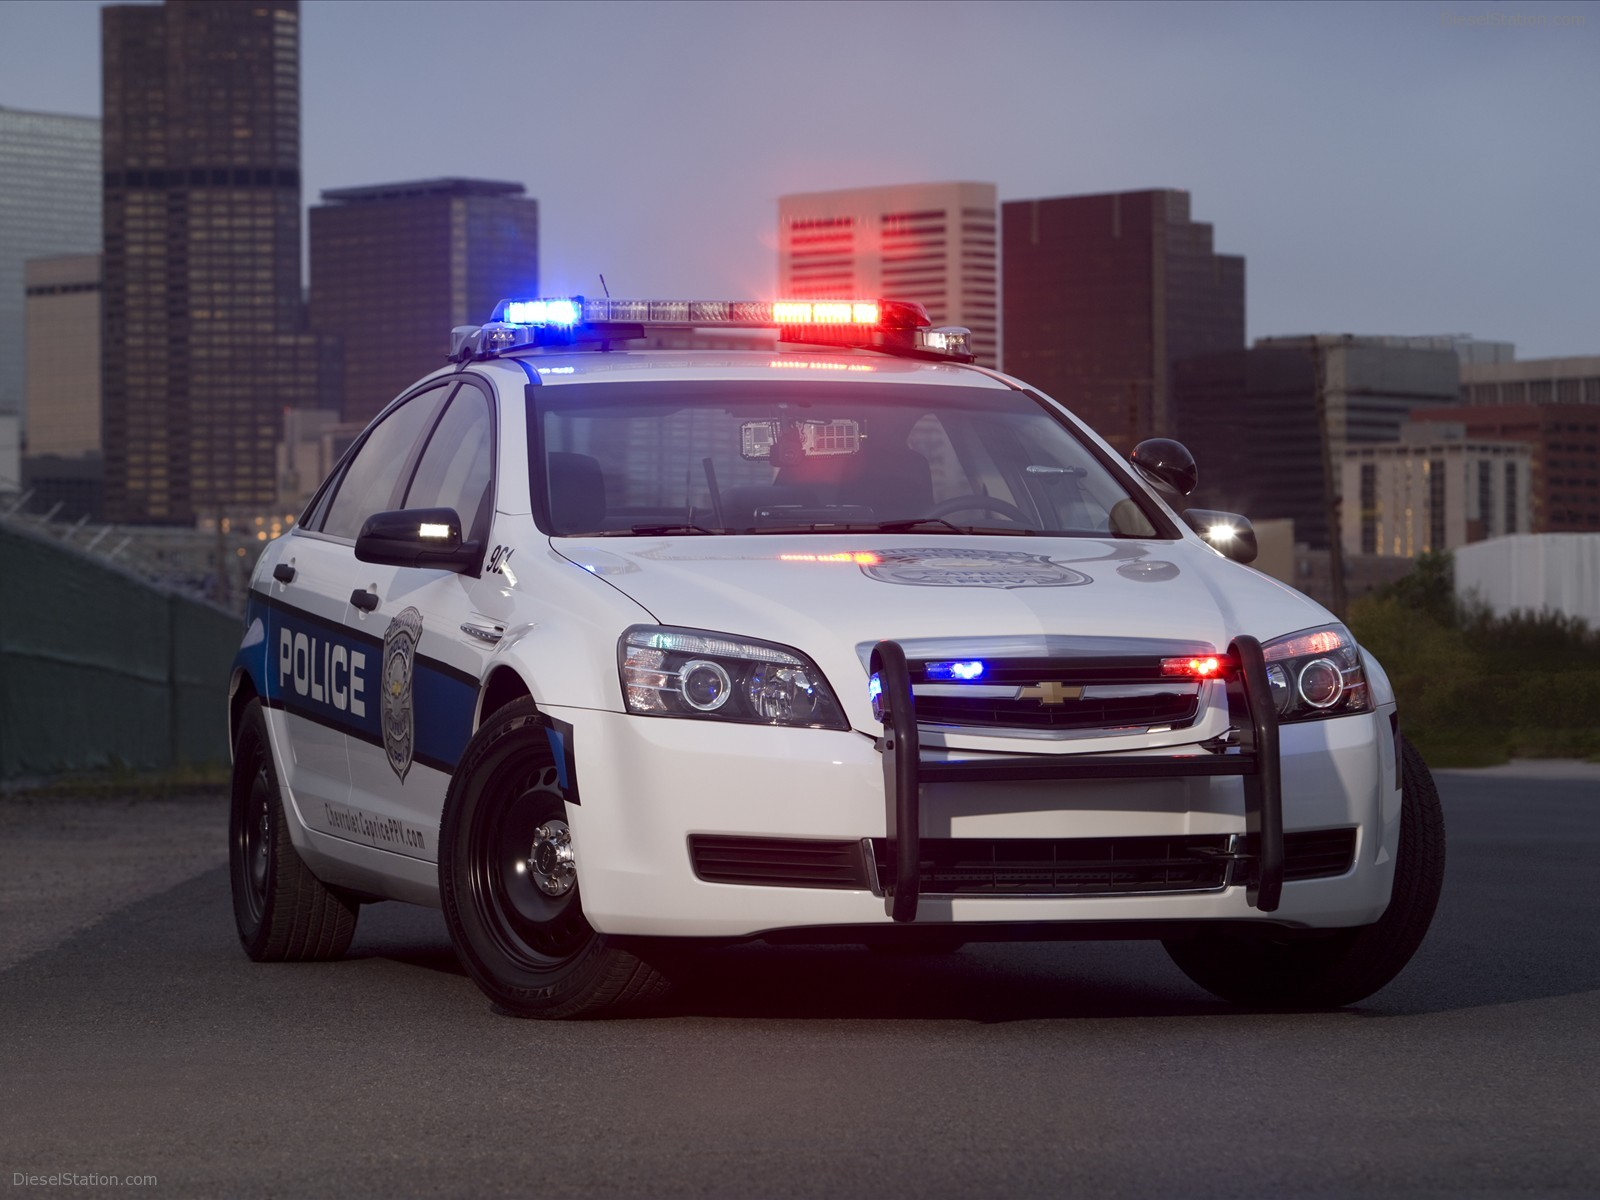 Cool Pictures Of Cars >> Cool Police Cars Wallpaper - WallpaperSafari